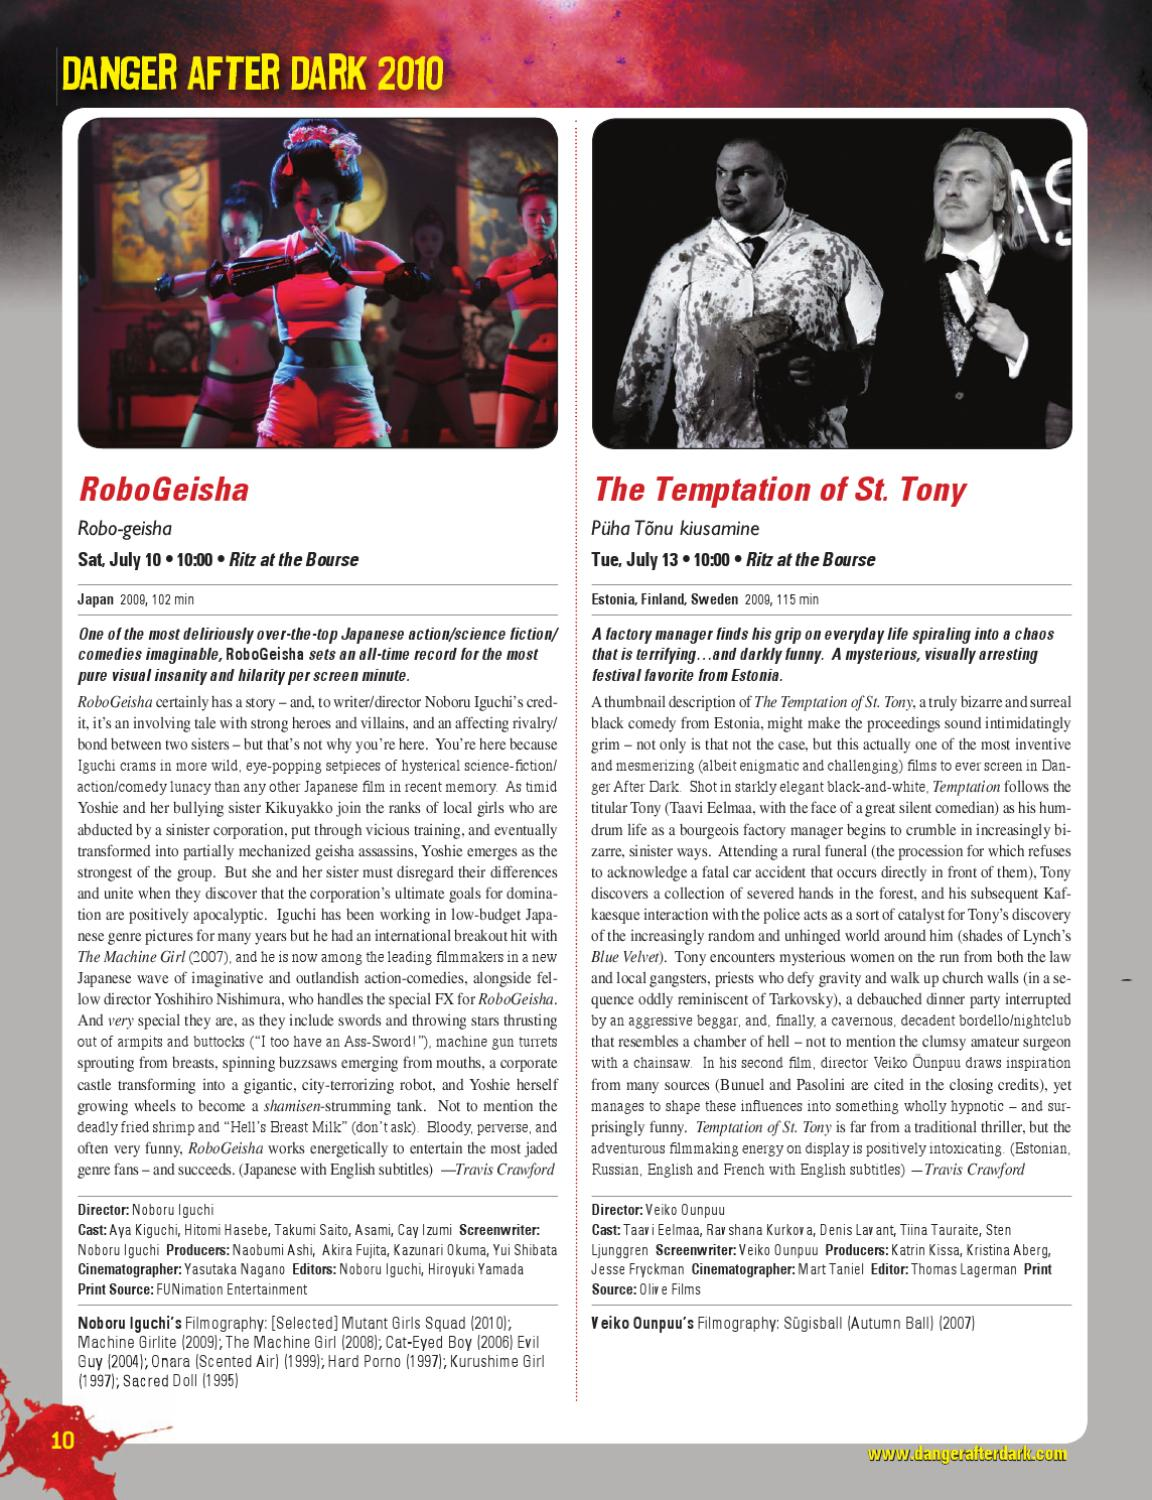 QFest 2010 / DAD 2010 by Philadelphia Cinema Alliance - issuu